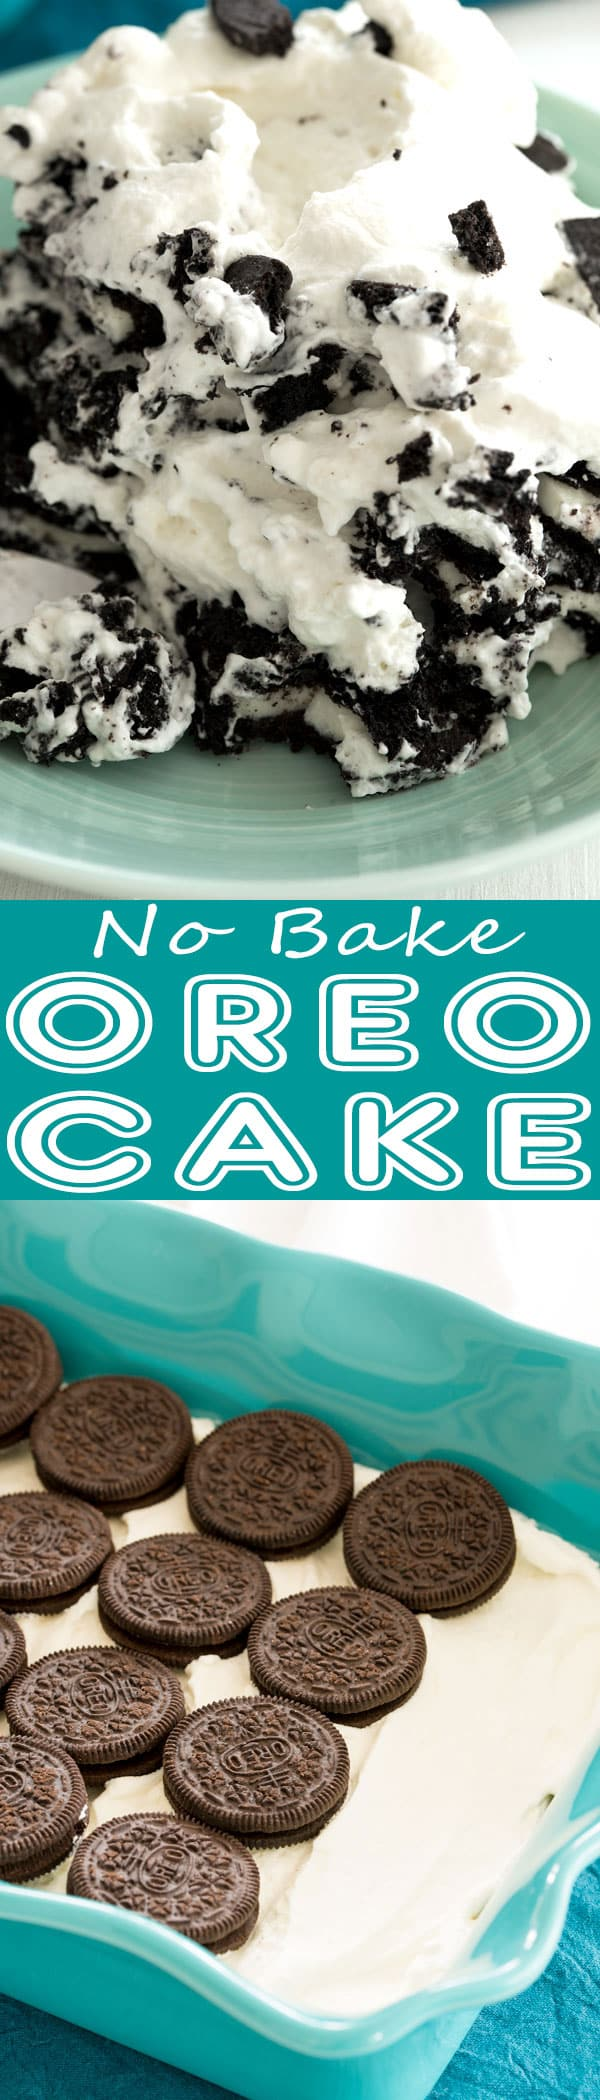 No Bake Oreo Cake 4 Ingredient Oreo Icebox Cake Kitchen Gidget